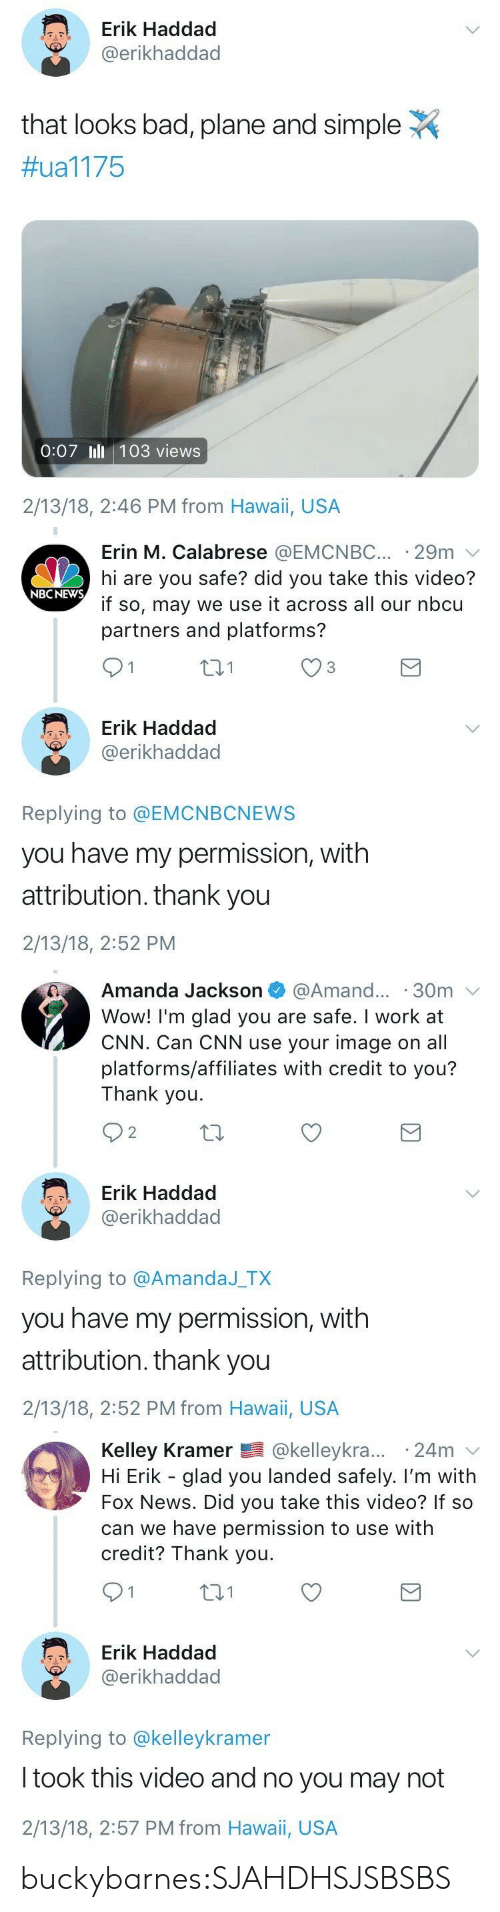 Bad, cnn.com, and News: Erik Haddad  @erikhaddad  that looks bad, plane and simple  #ual 175  0:07 Ill 103 views  2/13/18, 2:46 PM from Hawaii, USA   Erin M. Calabrese @EMCNBC 29m  hi are you safe? did you take this video?  if so, may we use it across all our nbcu  partners and platforms?  NBCNEWs  431  Erik Haddad  @erikhaddad  Replying to @EMCNBCNEWS  you have my permission, with  attribution. thank you  2/13/18, 2:52 PM   Amanda Jackson  @Amand... 30m  Wow! I'm glad you are safe. I work at  CNN. Can CNN use your image on all  platforms/affiliates with credit to you?  Thank you.  O 2  Erik Haddad  @erikhaddad  Replying to @AmandaJ TX  you have my permission, with  attribution. thank you  2/13/18, 2:52 PM from Hawaii, USA   Kelley Kramer @kelleykra... 24m v  Hi Erik - glad you landed safely. I'm with  Fox News. Did you take this video? If so  can we have permission to use with  credit? Thank you.  t01  Erik Haddad  @erikhaddad  Replying to @kelleykramer  I took this video and no you may not  2/13/18, 2:57 PM from Hawai, USA buckybarnes:SJAHDHSJSBSBS